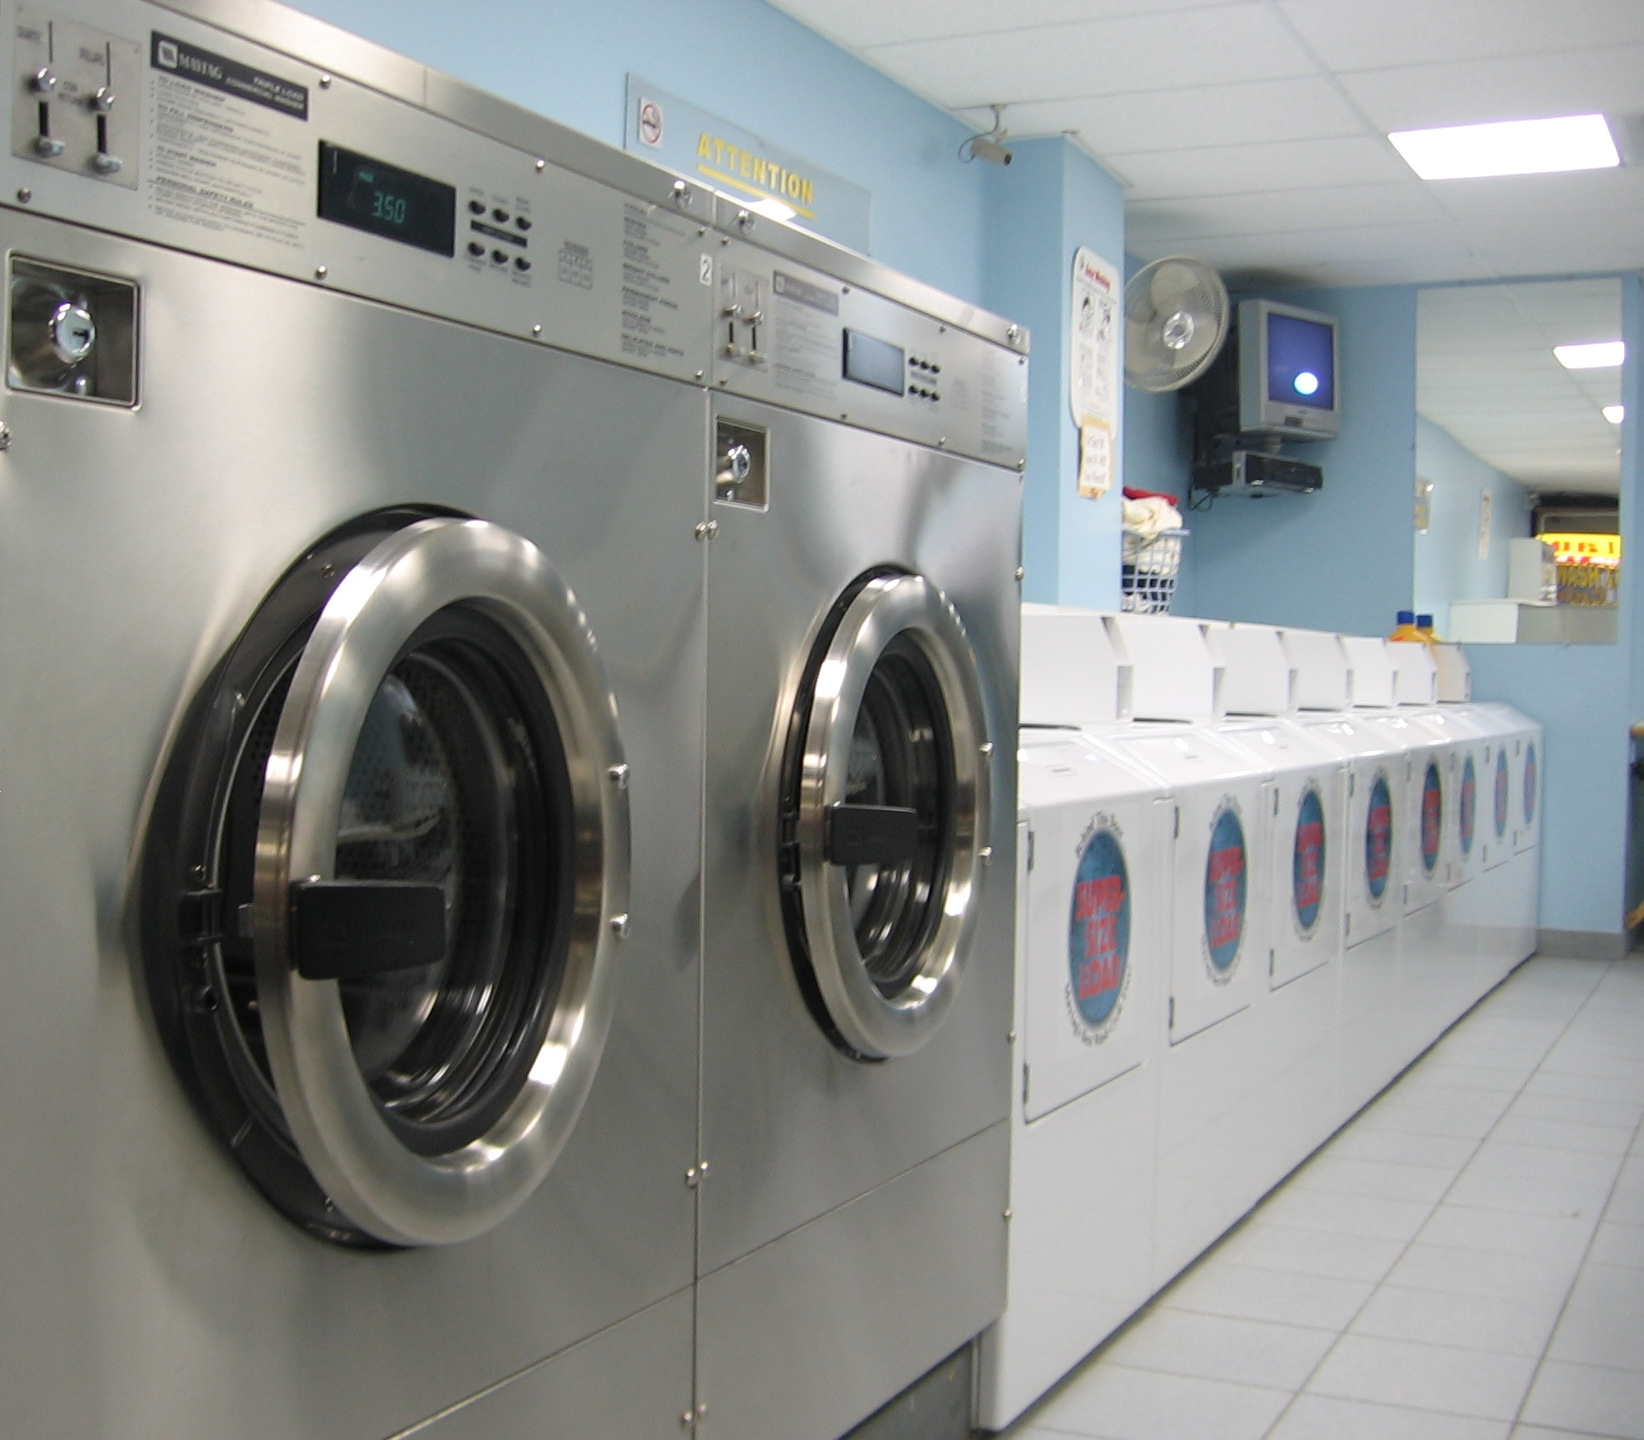 Funny Laundromat Pictures Top 5 Funny Things To Do At A Laundromat